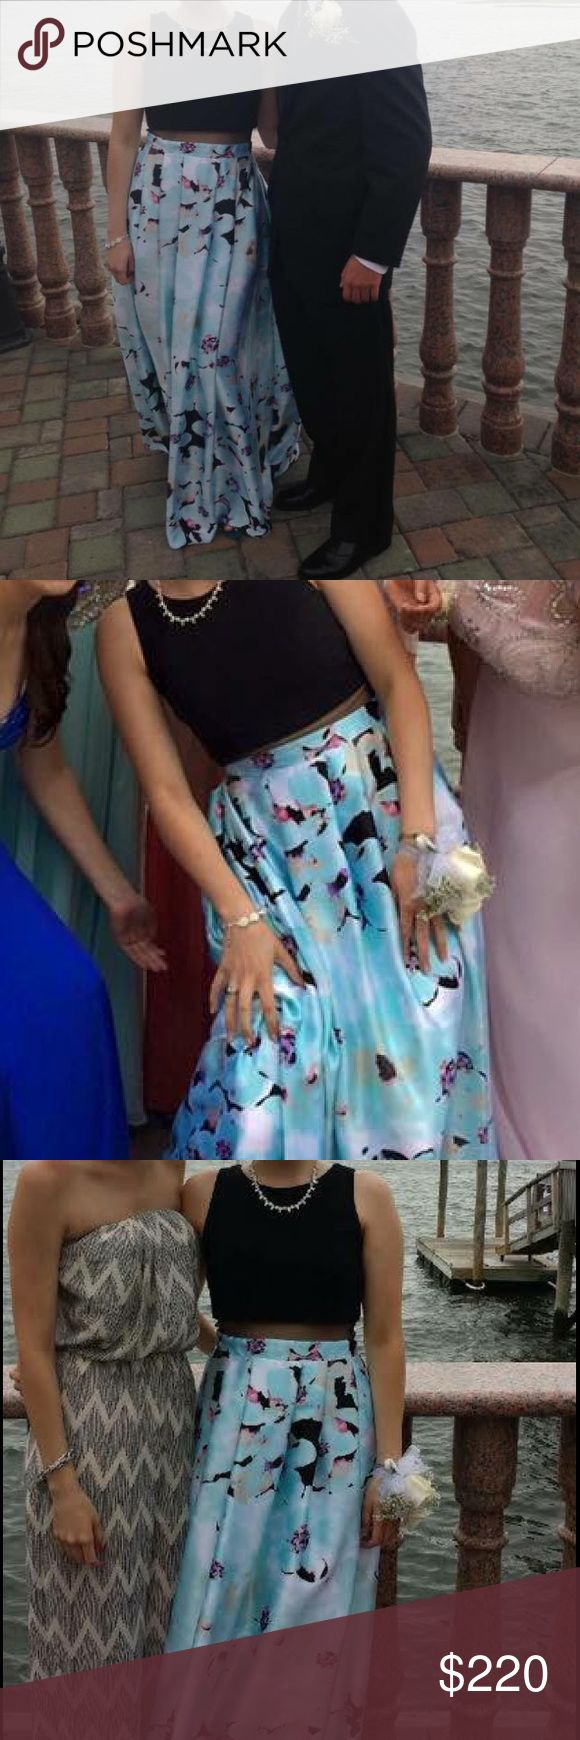 Aqua Prom Dress/ Evening Gown Bloomingdales Great Condition, only worn once dress from Bloomingdales Aqua Dresses Prom